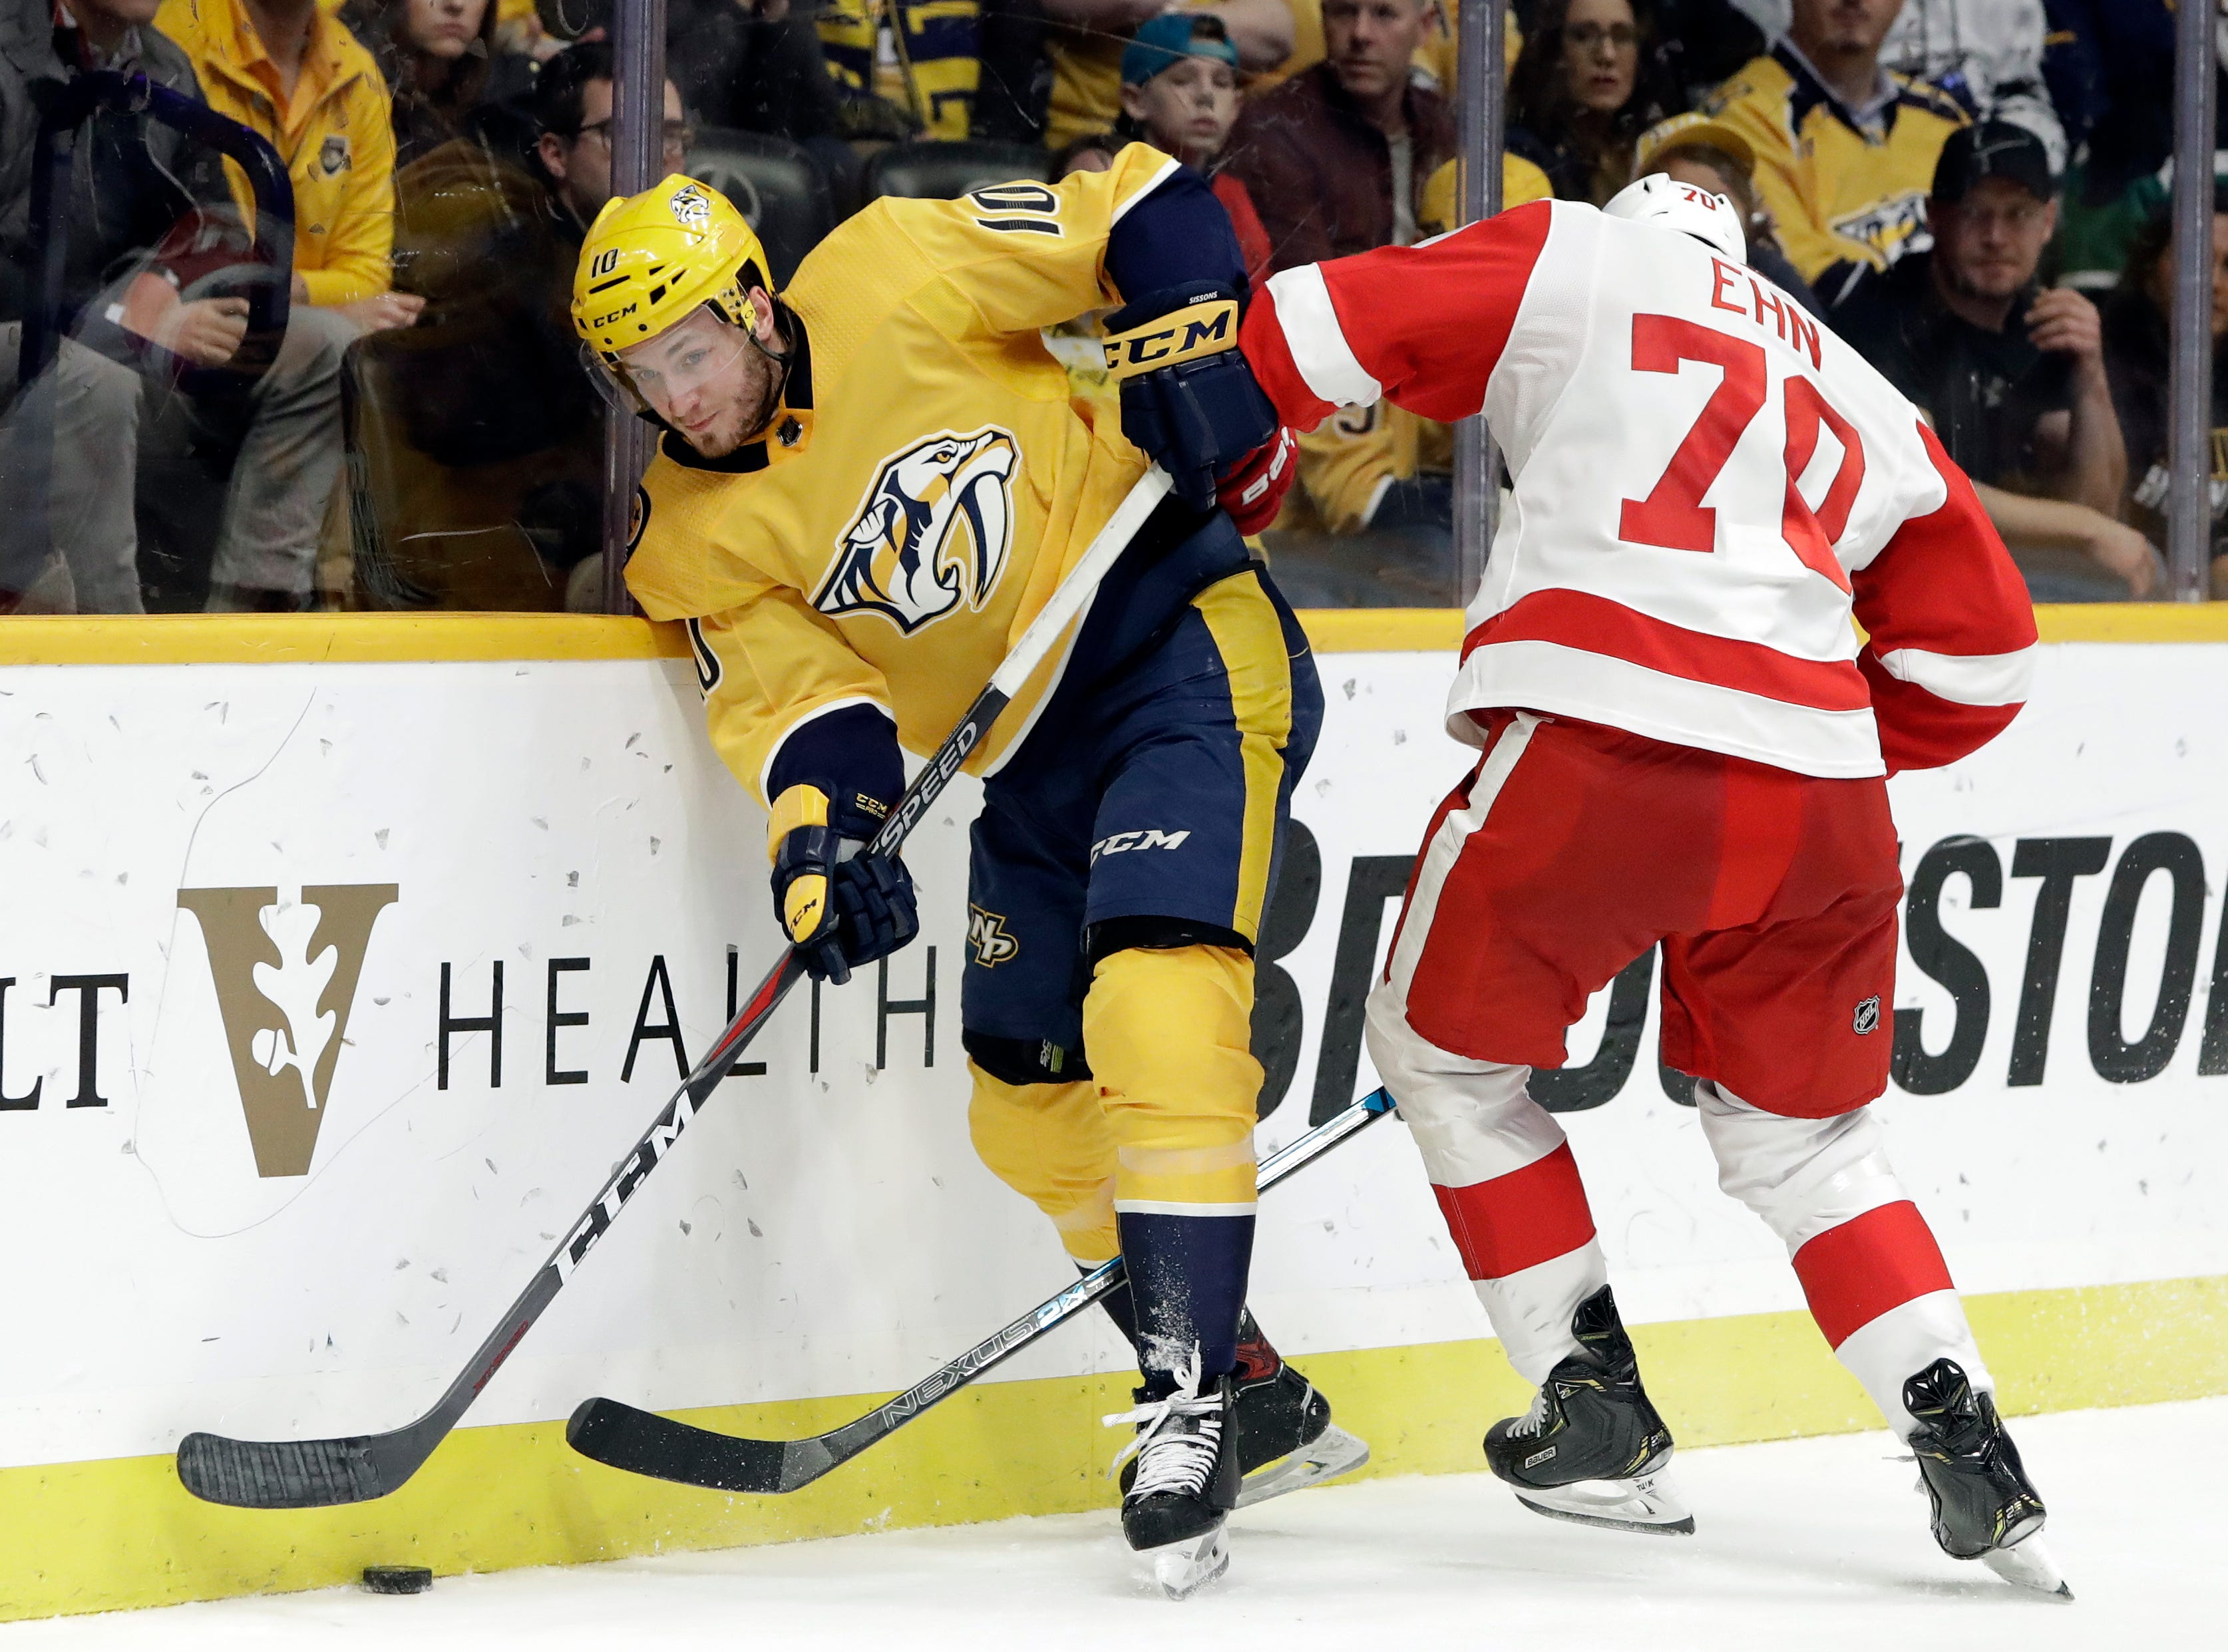 Nashville Predators center Colton Sissons (10) and Detroit Red Wings center Christoffer Ehn (70), of Sweden, battle for the puck during the second period.